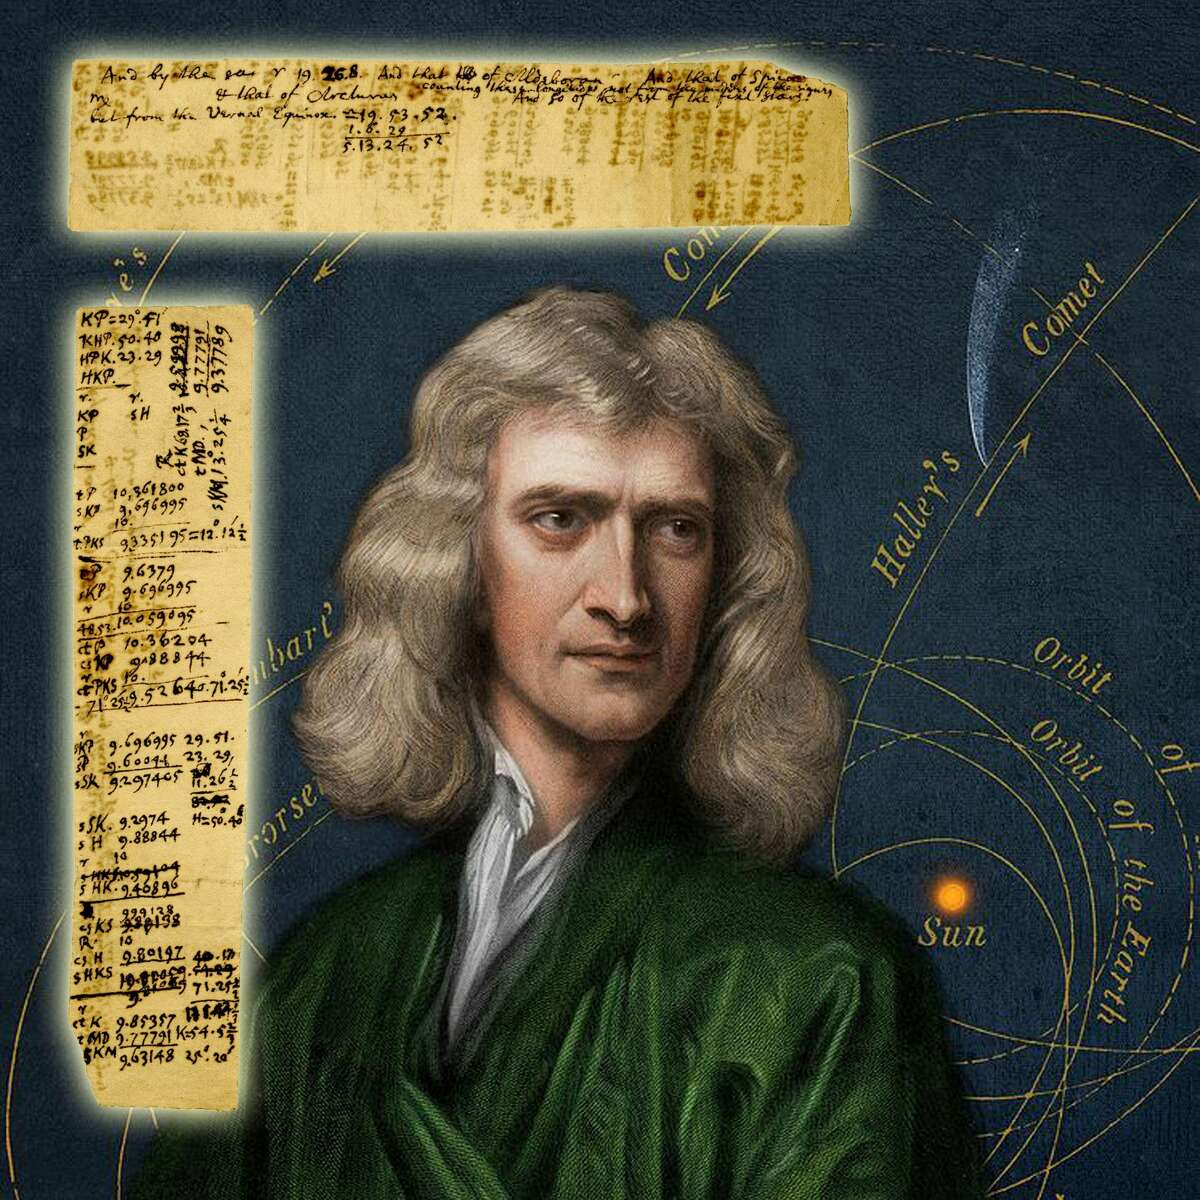 Sir Isaac Newton's handwritten notes and calculations speculating about the exact position of stars and comets, ideas later formalized in his iconic work, Principia.